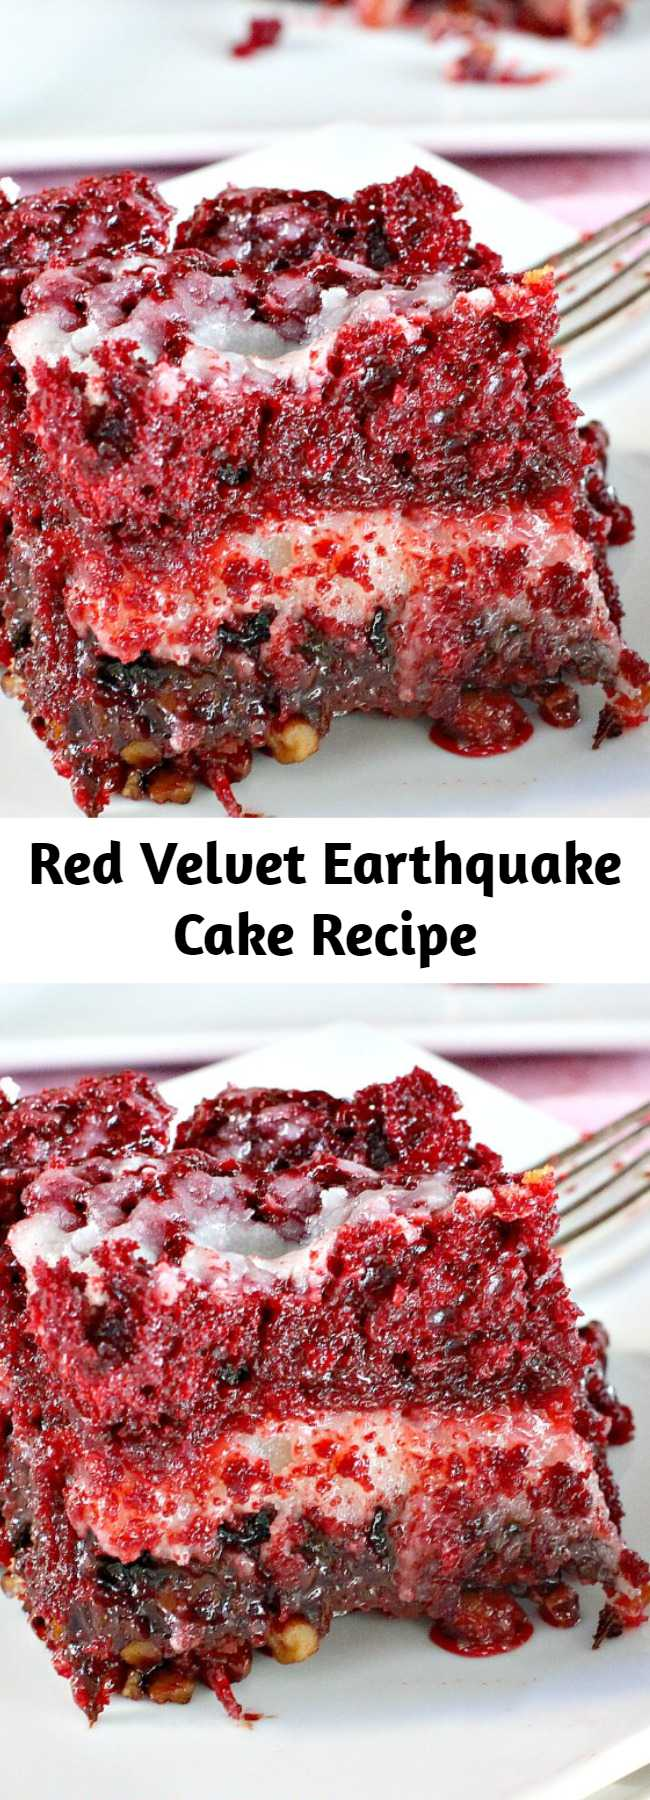 This delectable cake recipe calls for a Red Velvet cake batter and a cheesecake layer over top of pecans, coconut and chocolate chips. While baking the cake undergoes a seismic shift which explains its name. Fabulous for Christmas and Valentine's Day or other holiday baking. It is phenomenal! #dessert #redvelvet #cake #holidays #Christmas #ValentinesDay #chocolate #cheesecake